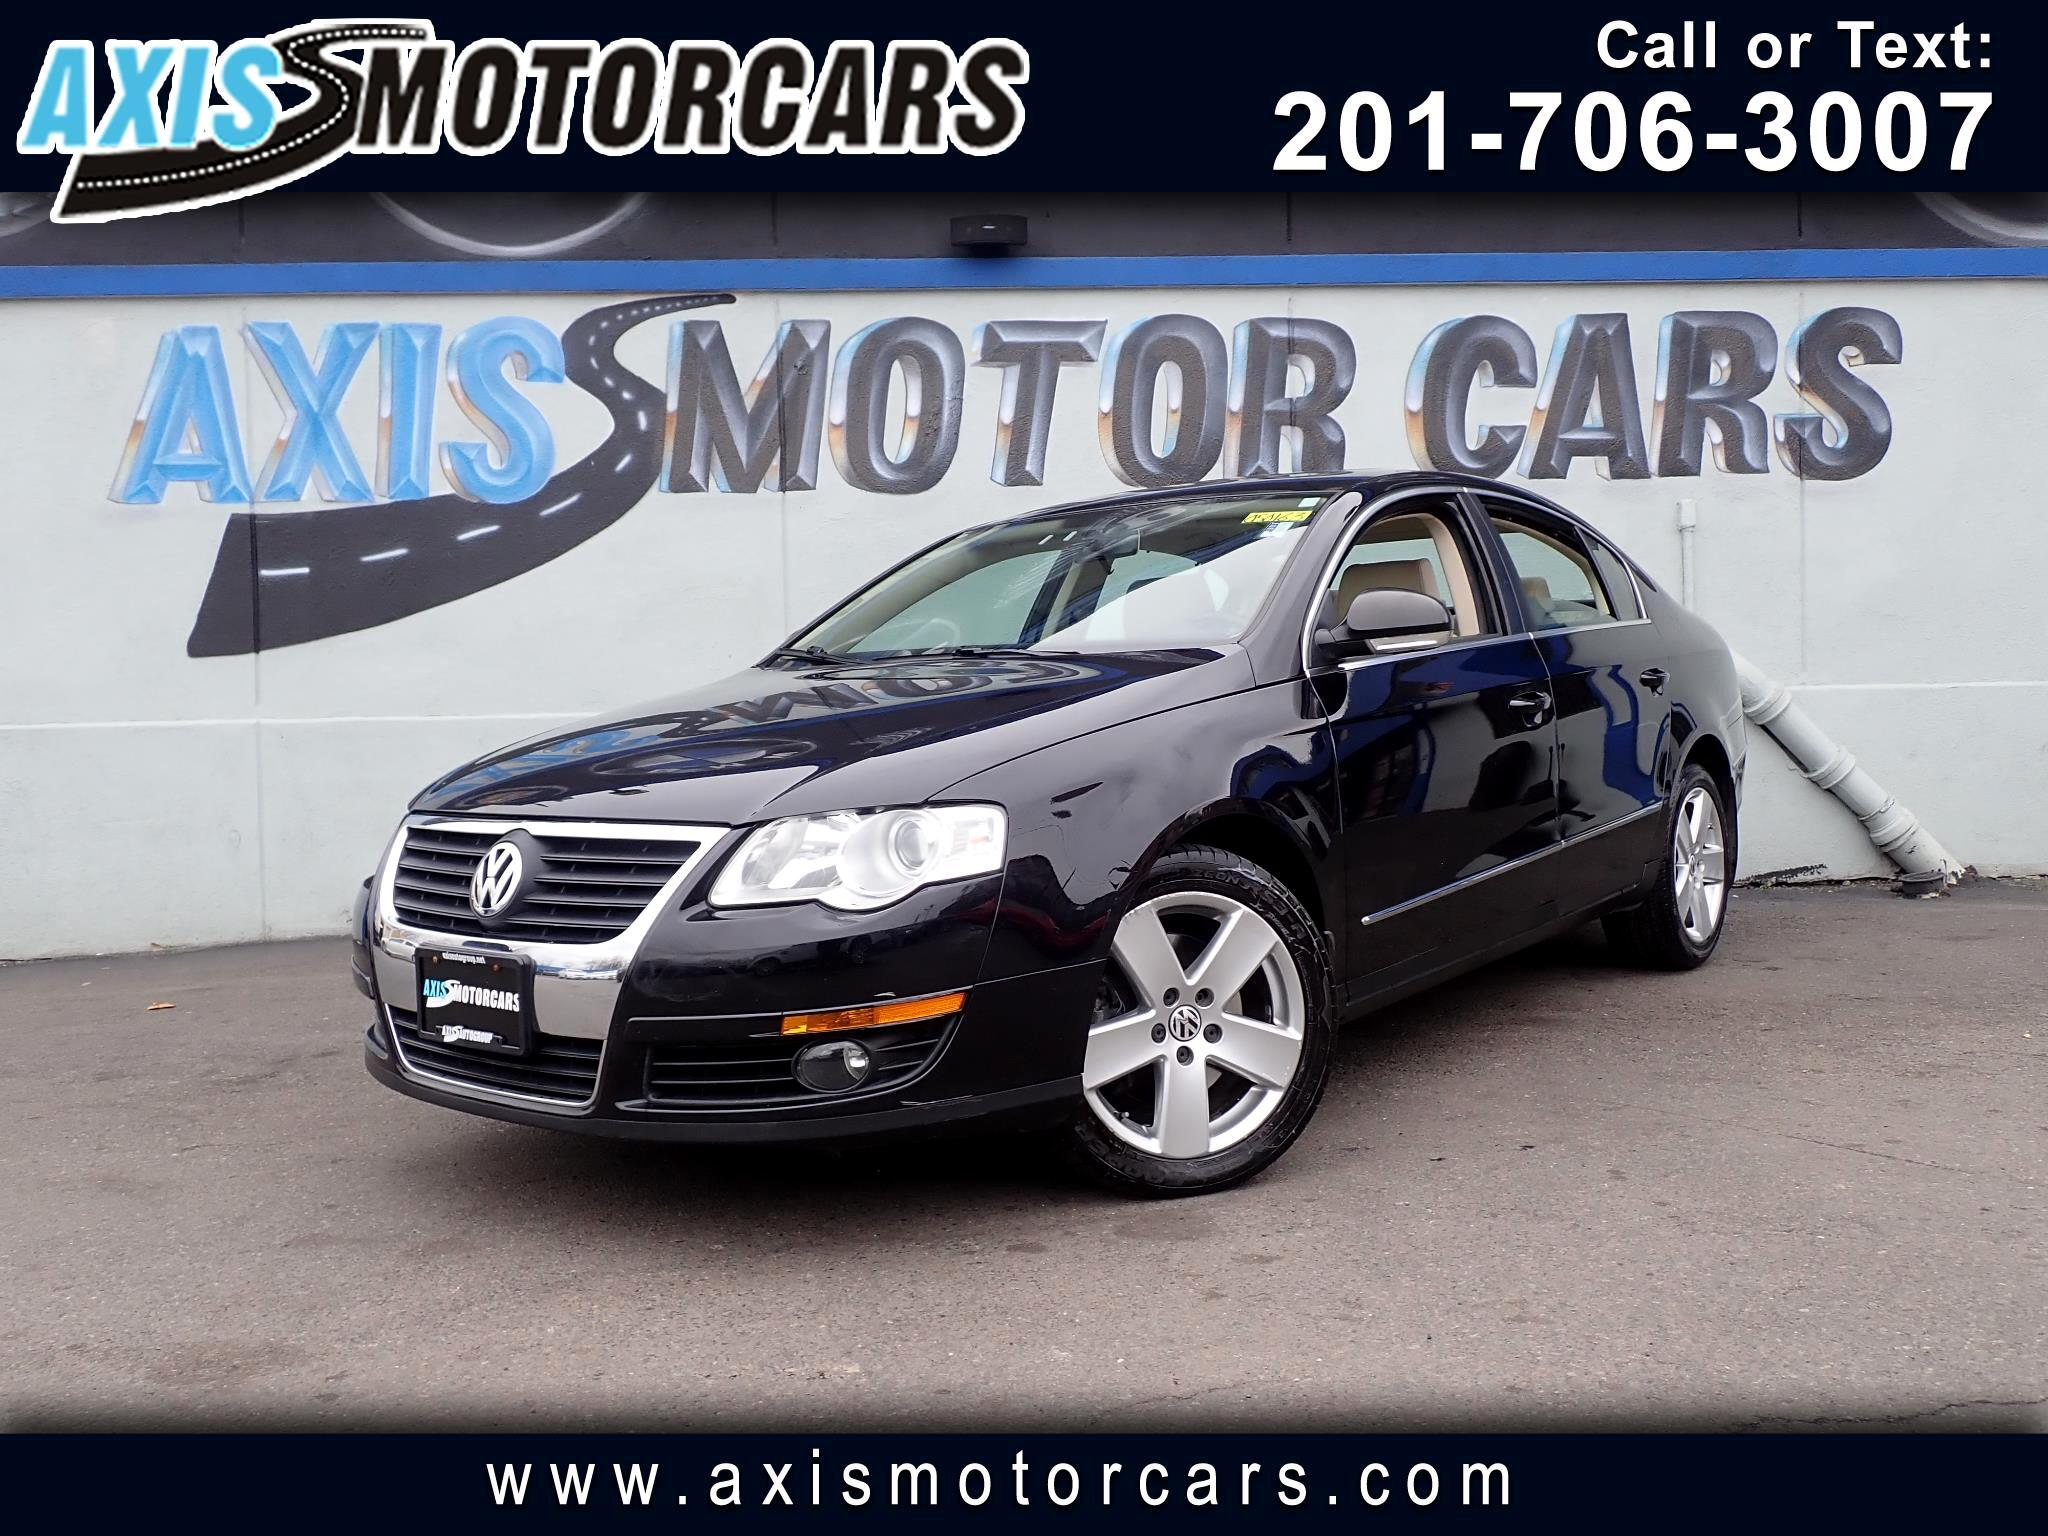 2009 Volkswagen Passat Sedan Auto Turbo  w/Rear Entertainment System